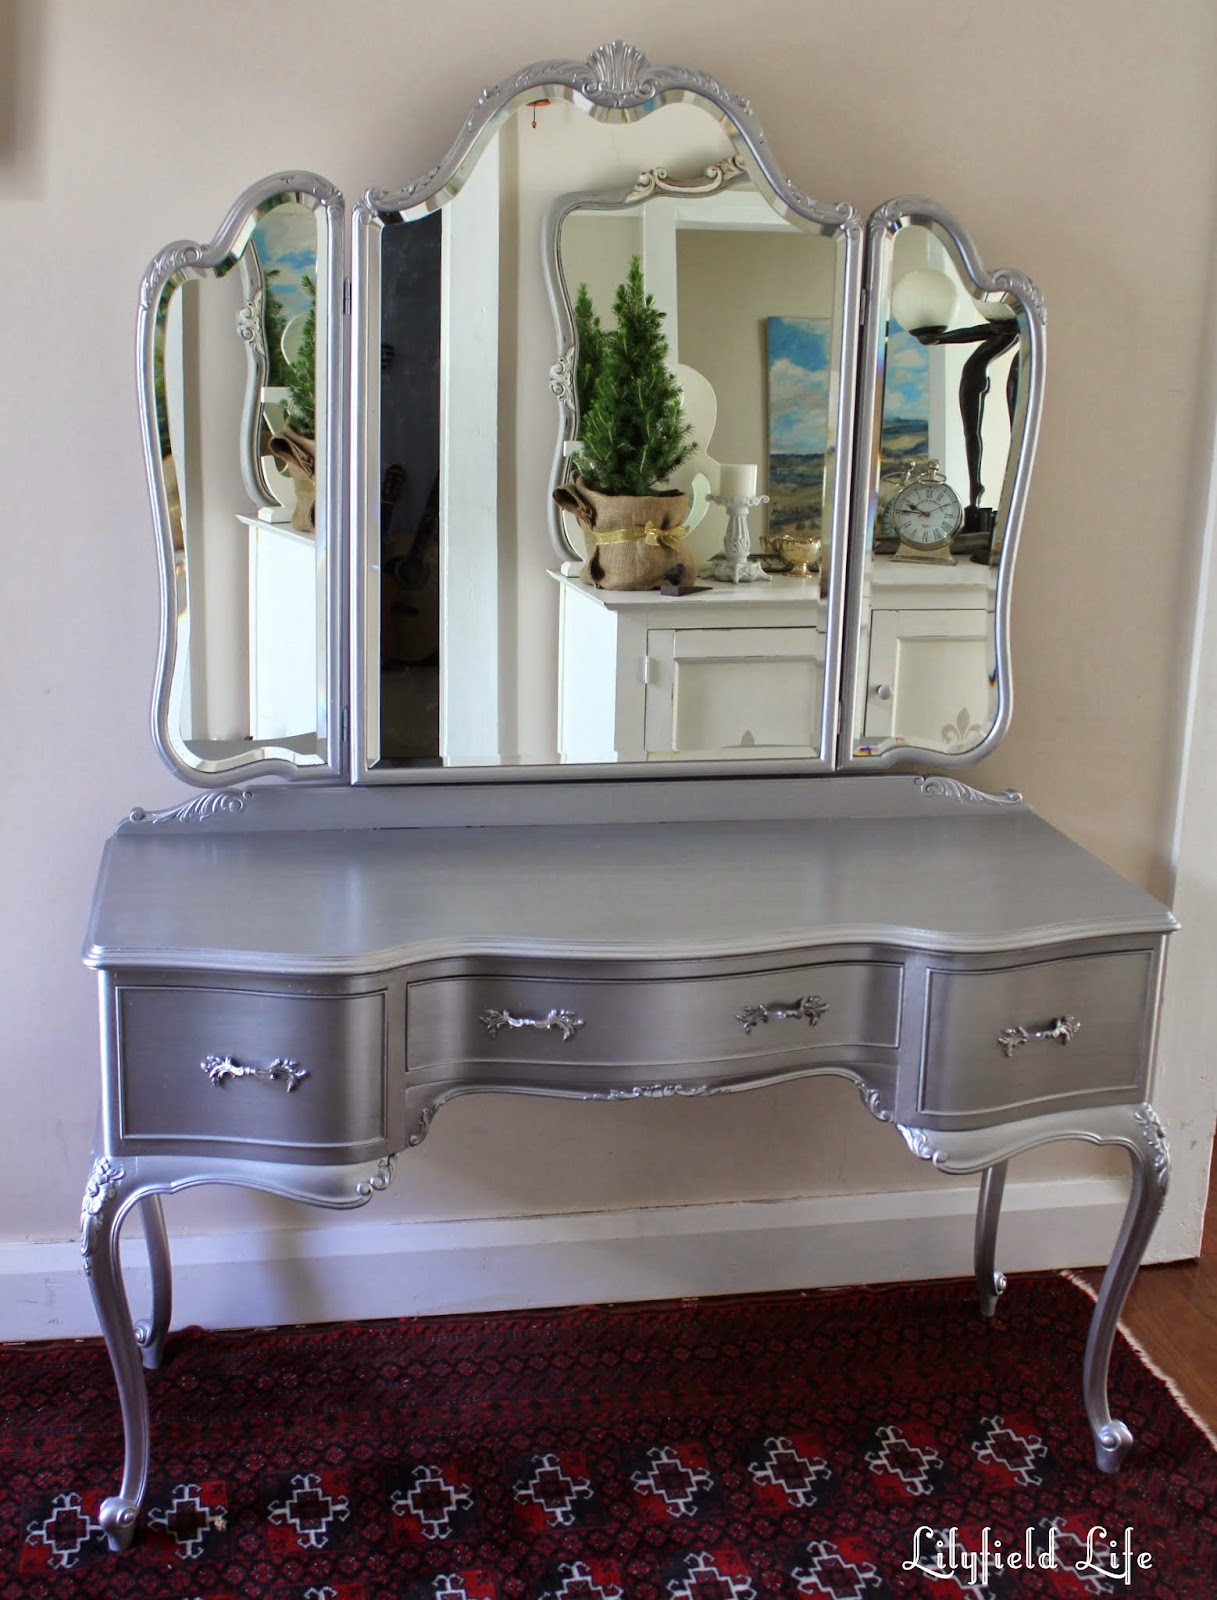 Painted Dressing Table ~ Lilyfield life tips on using metallic paint and a silver